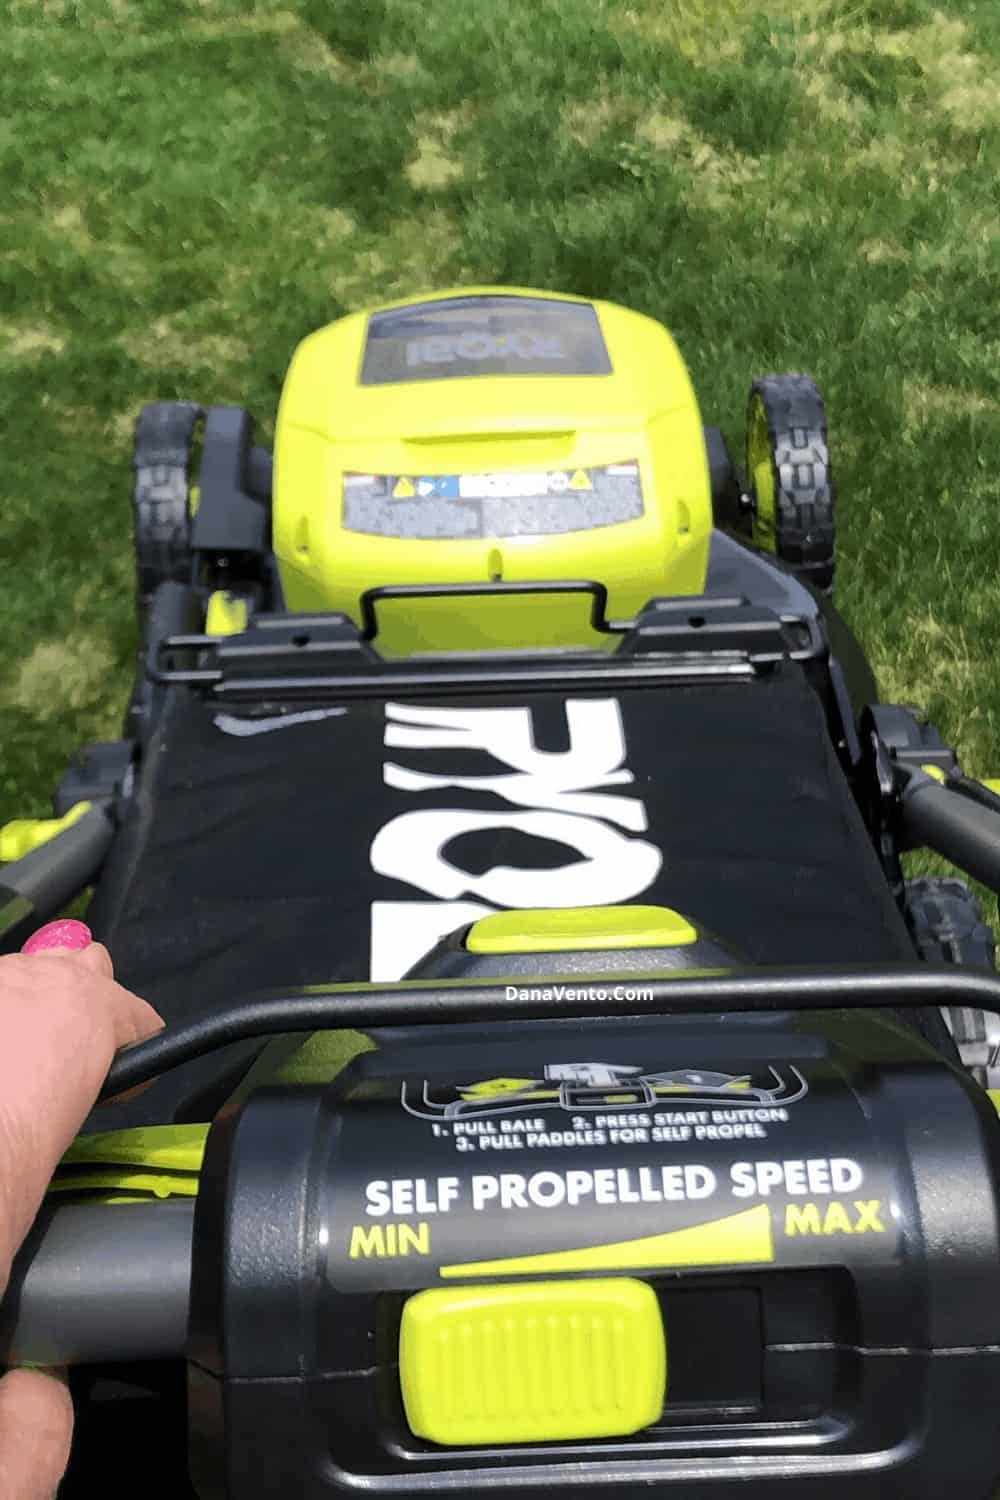 Bale handle on RYOBI Mower